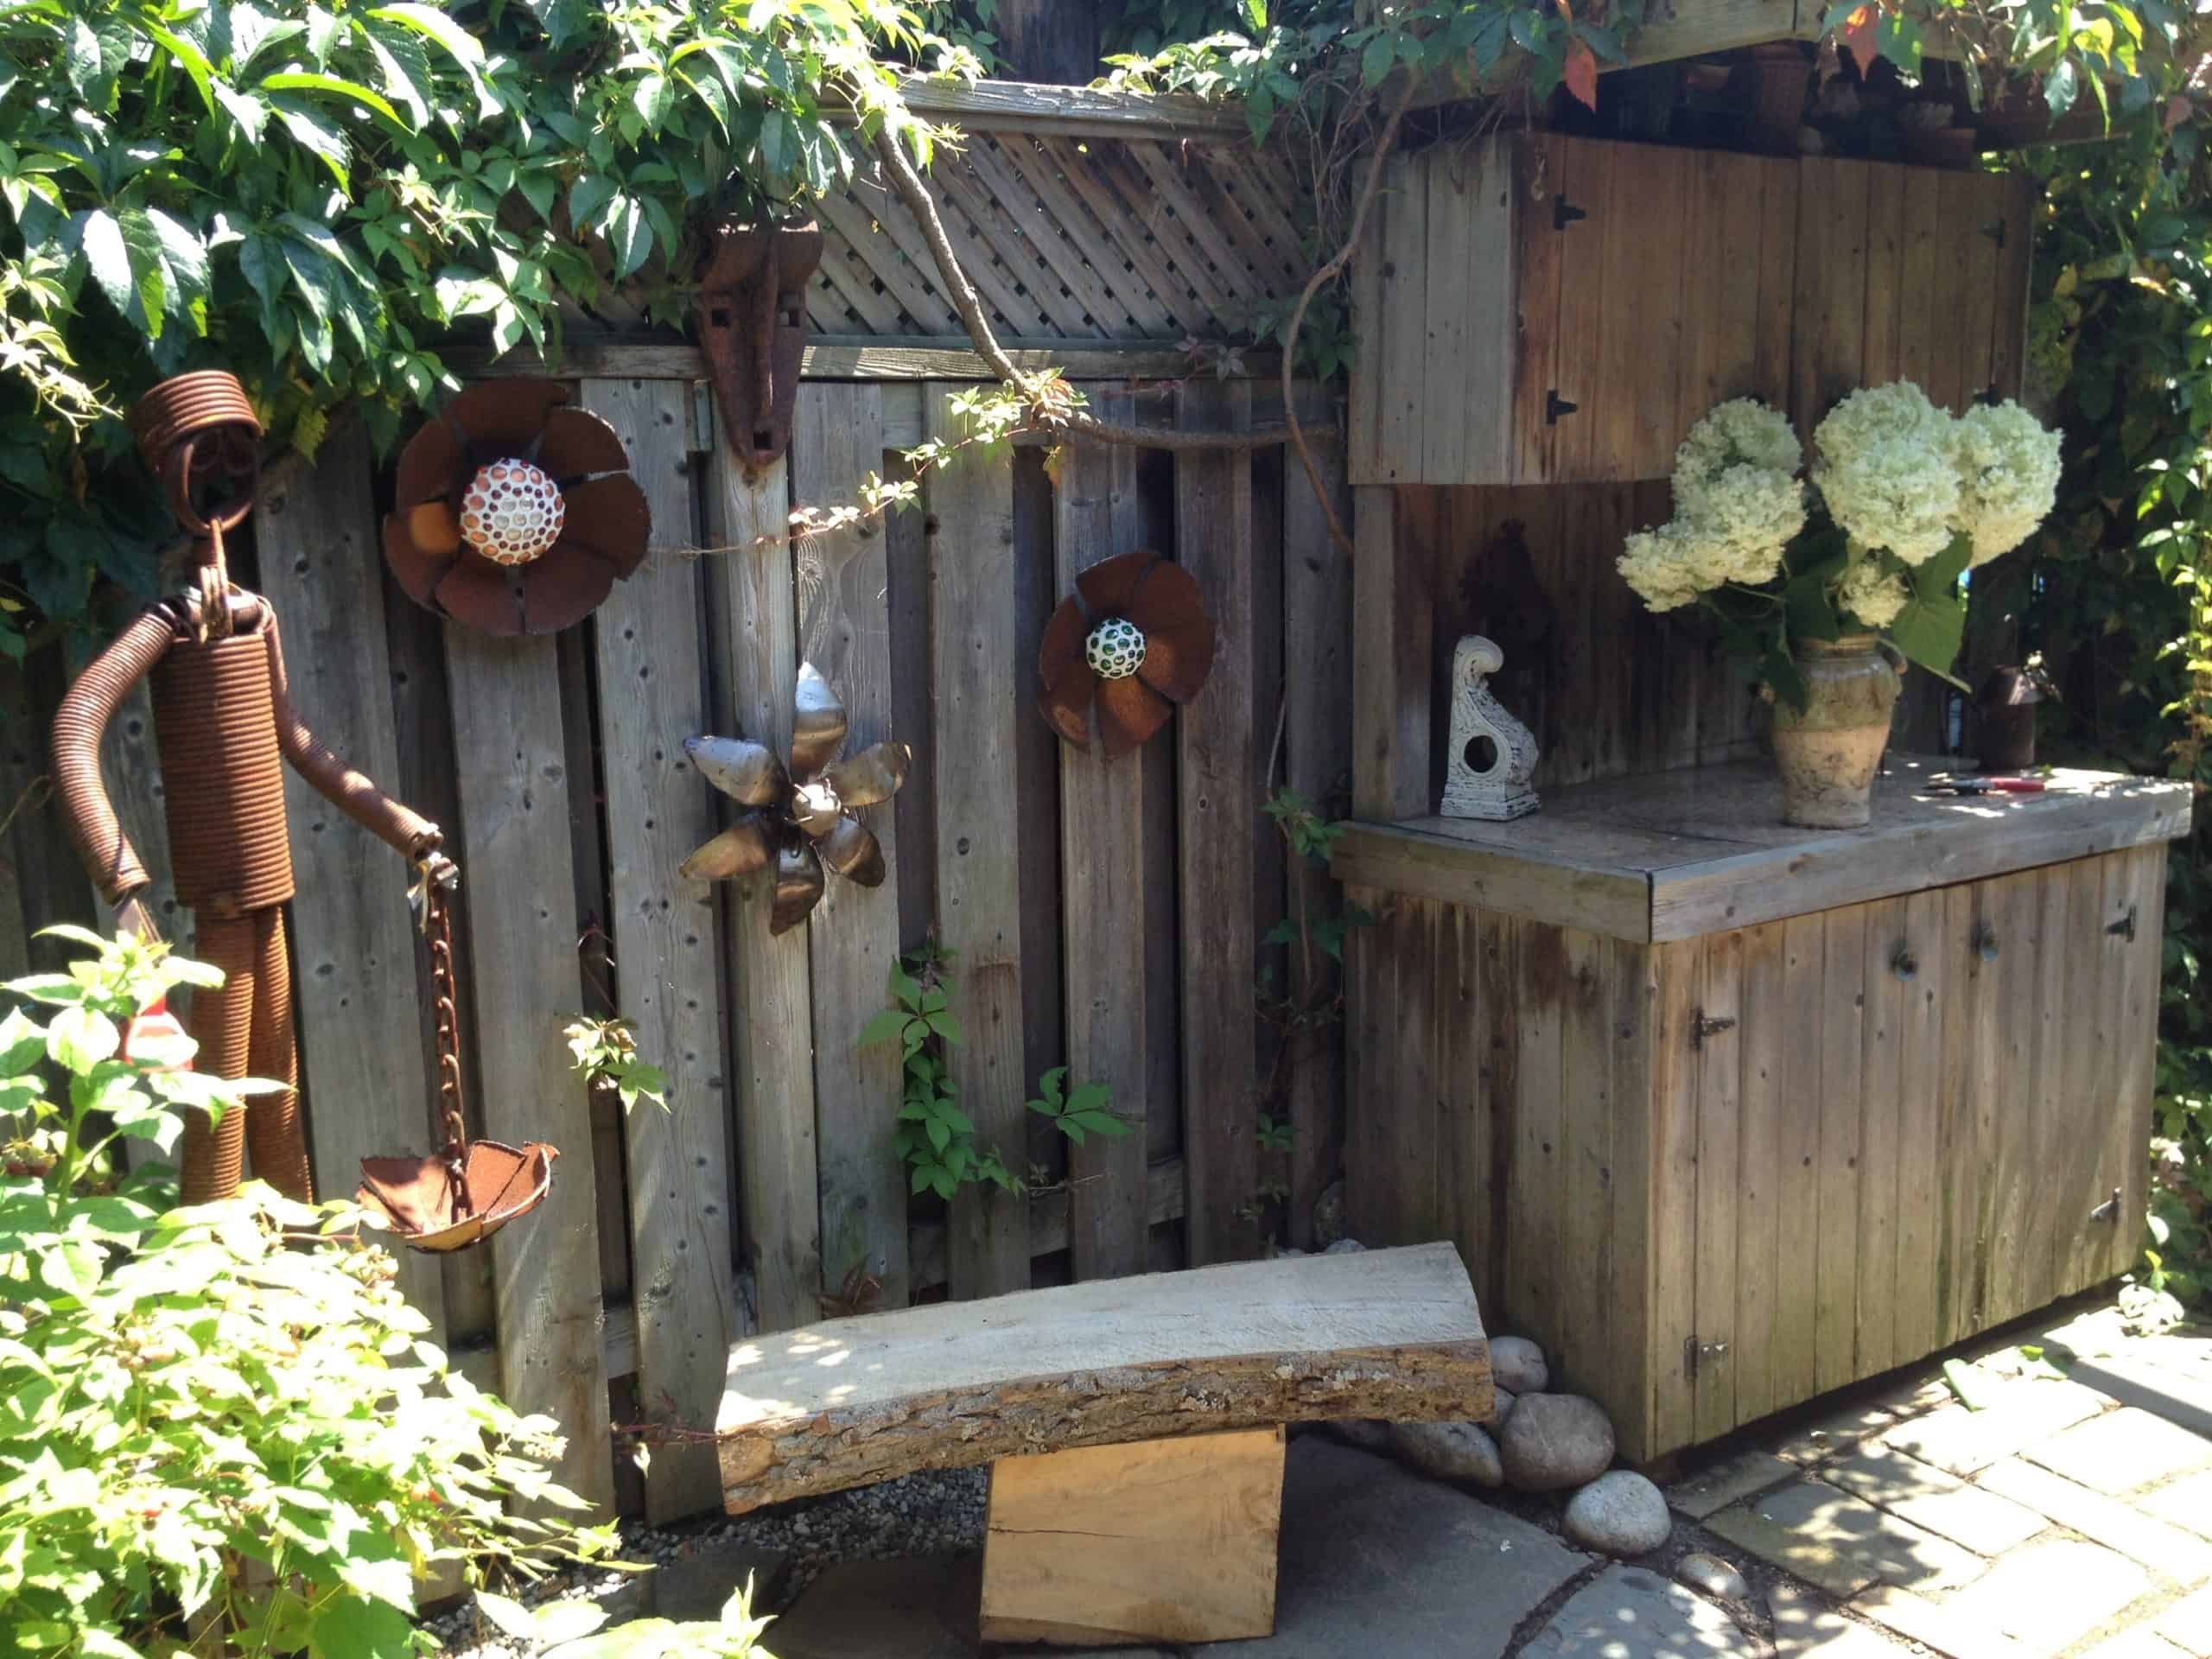 This garden was full of art, containers and bird baths made by one of the homewoners, from reclaimed materials.